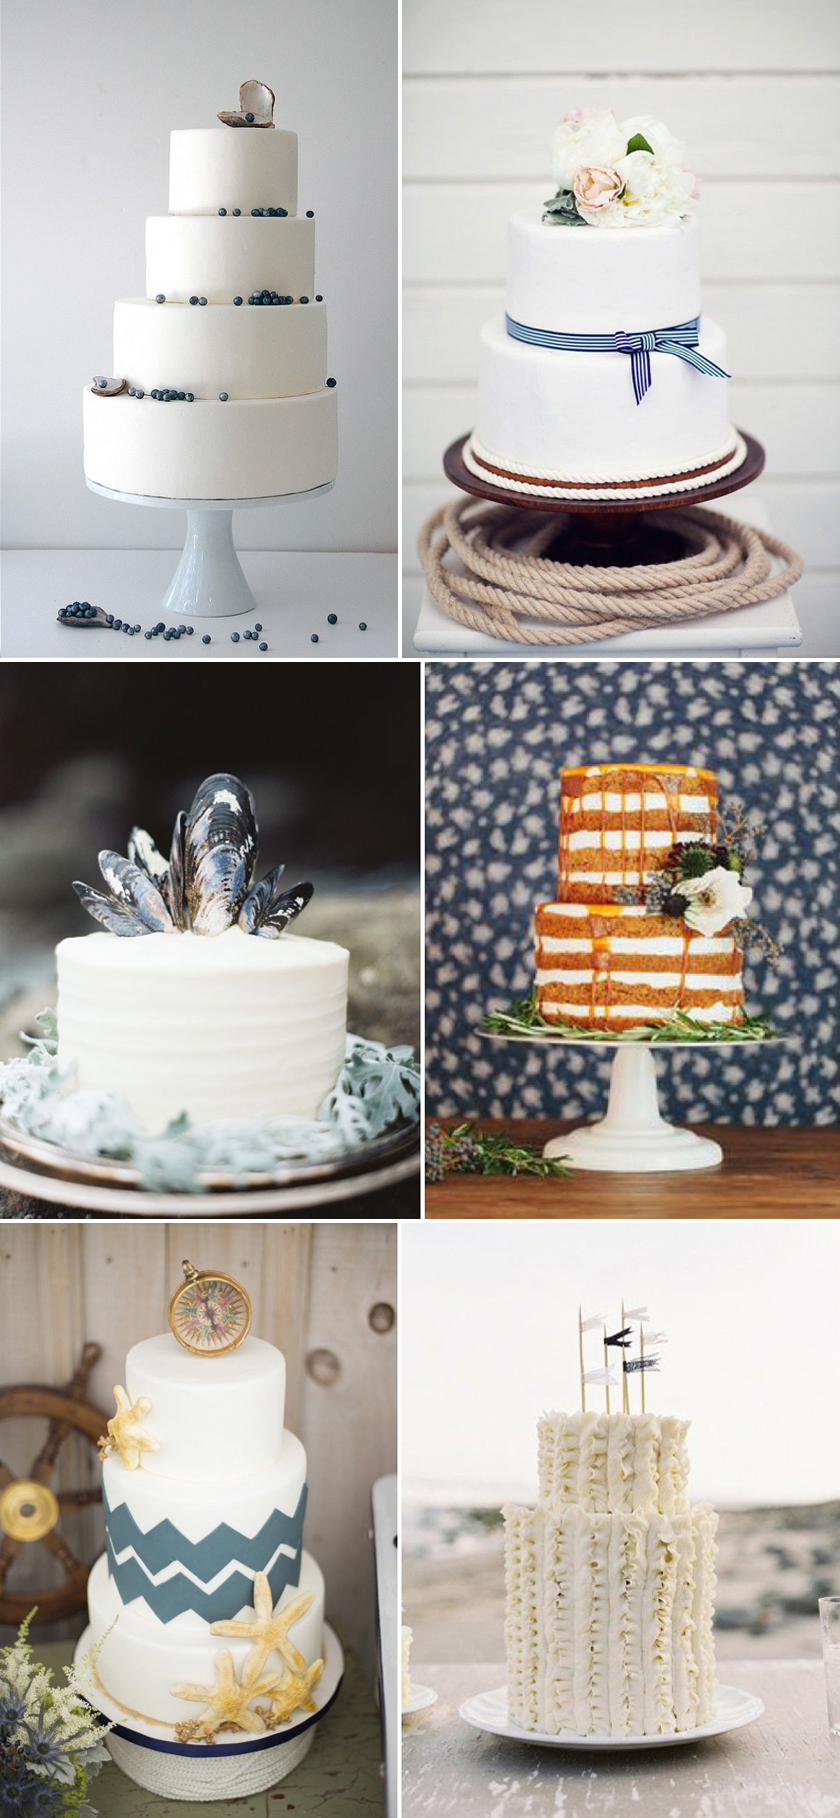 Coco Wedding Venues - Coastal Cool, Cakes.